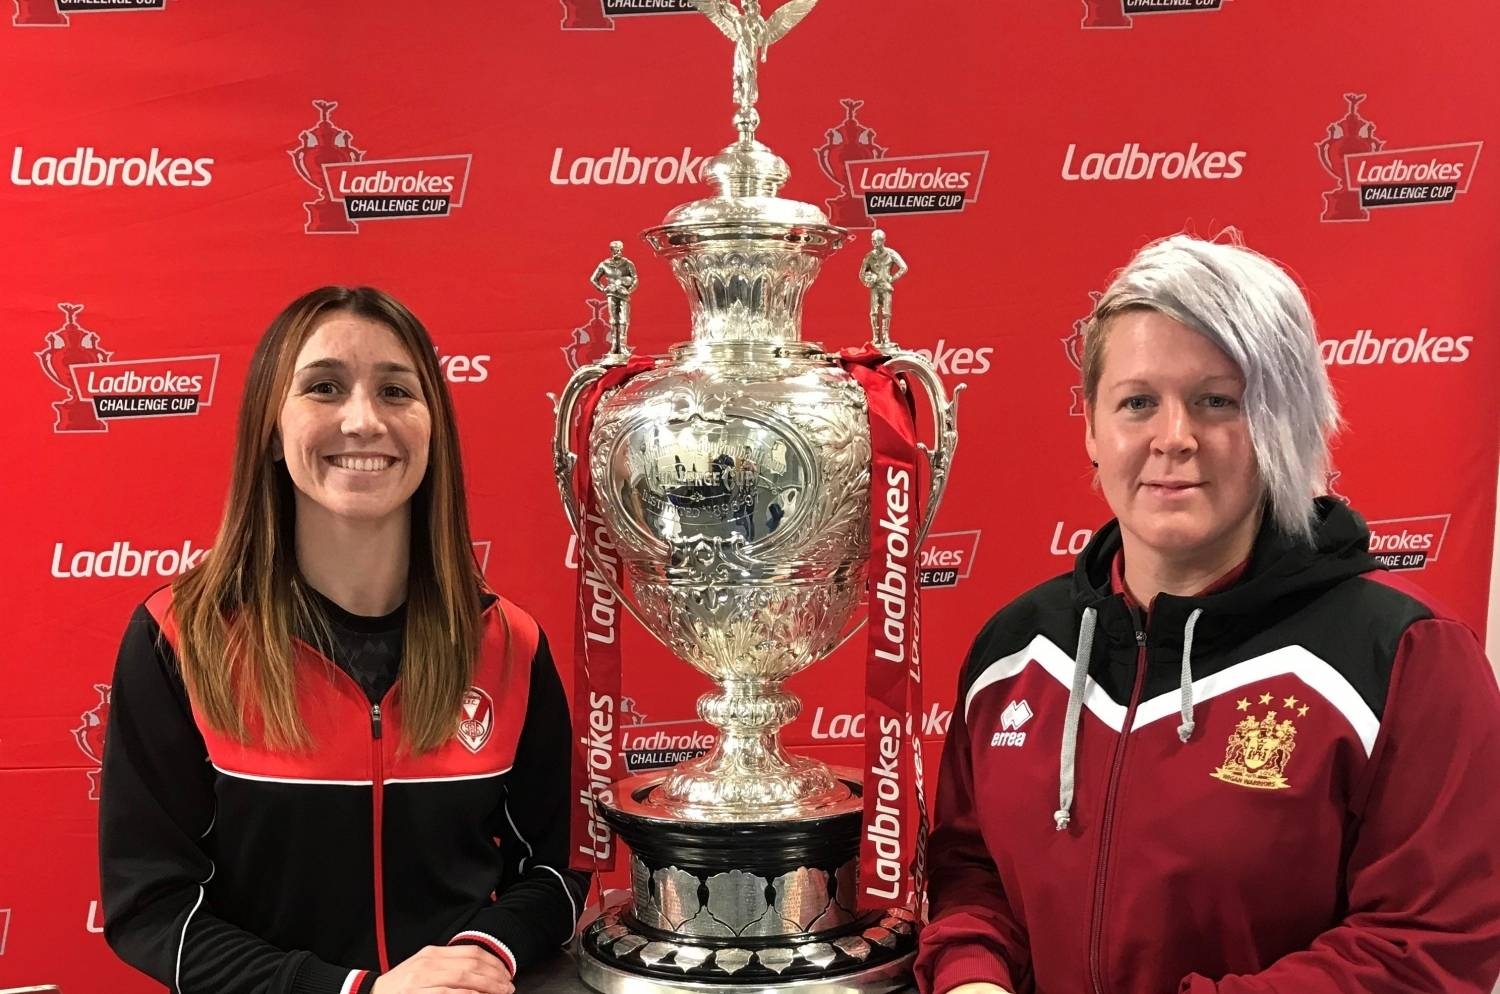 York City Knights to host Catalans Dragons in fifth round of Ladbrokes Challenge Cup